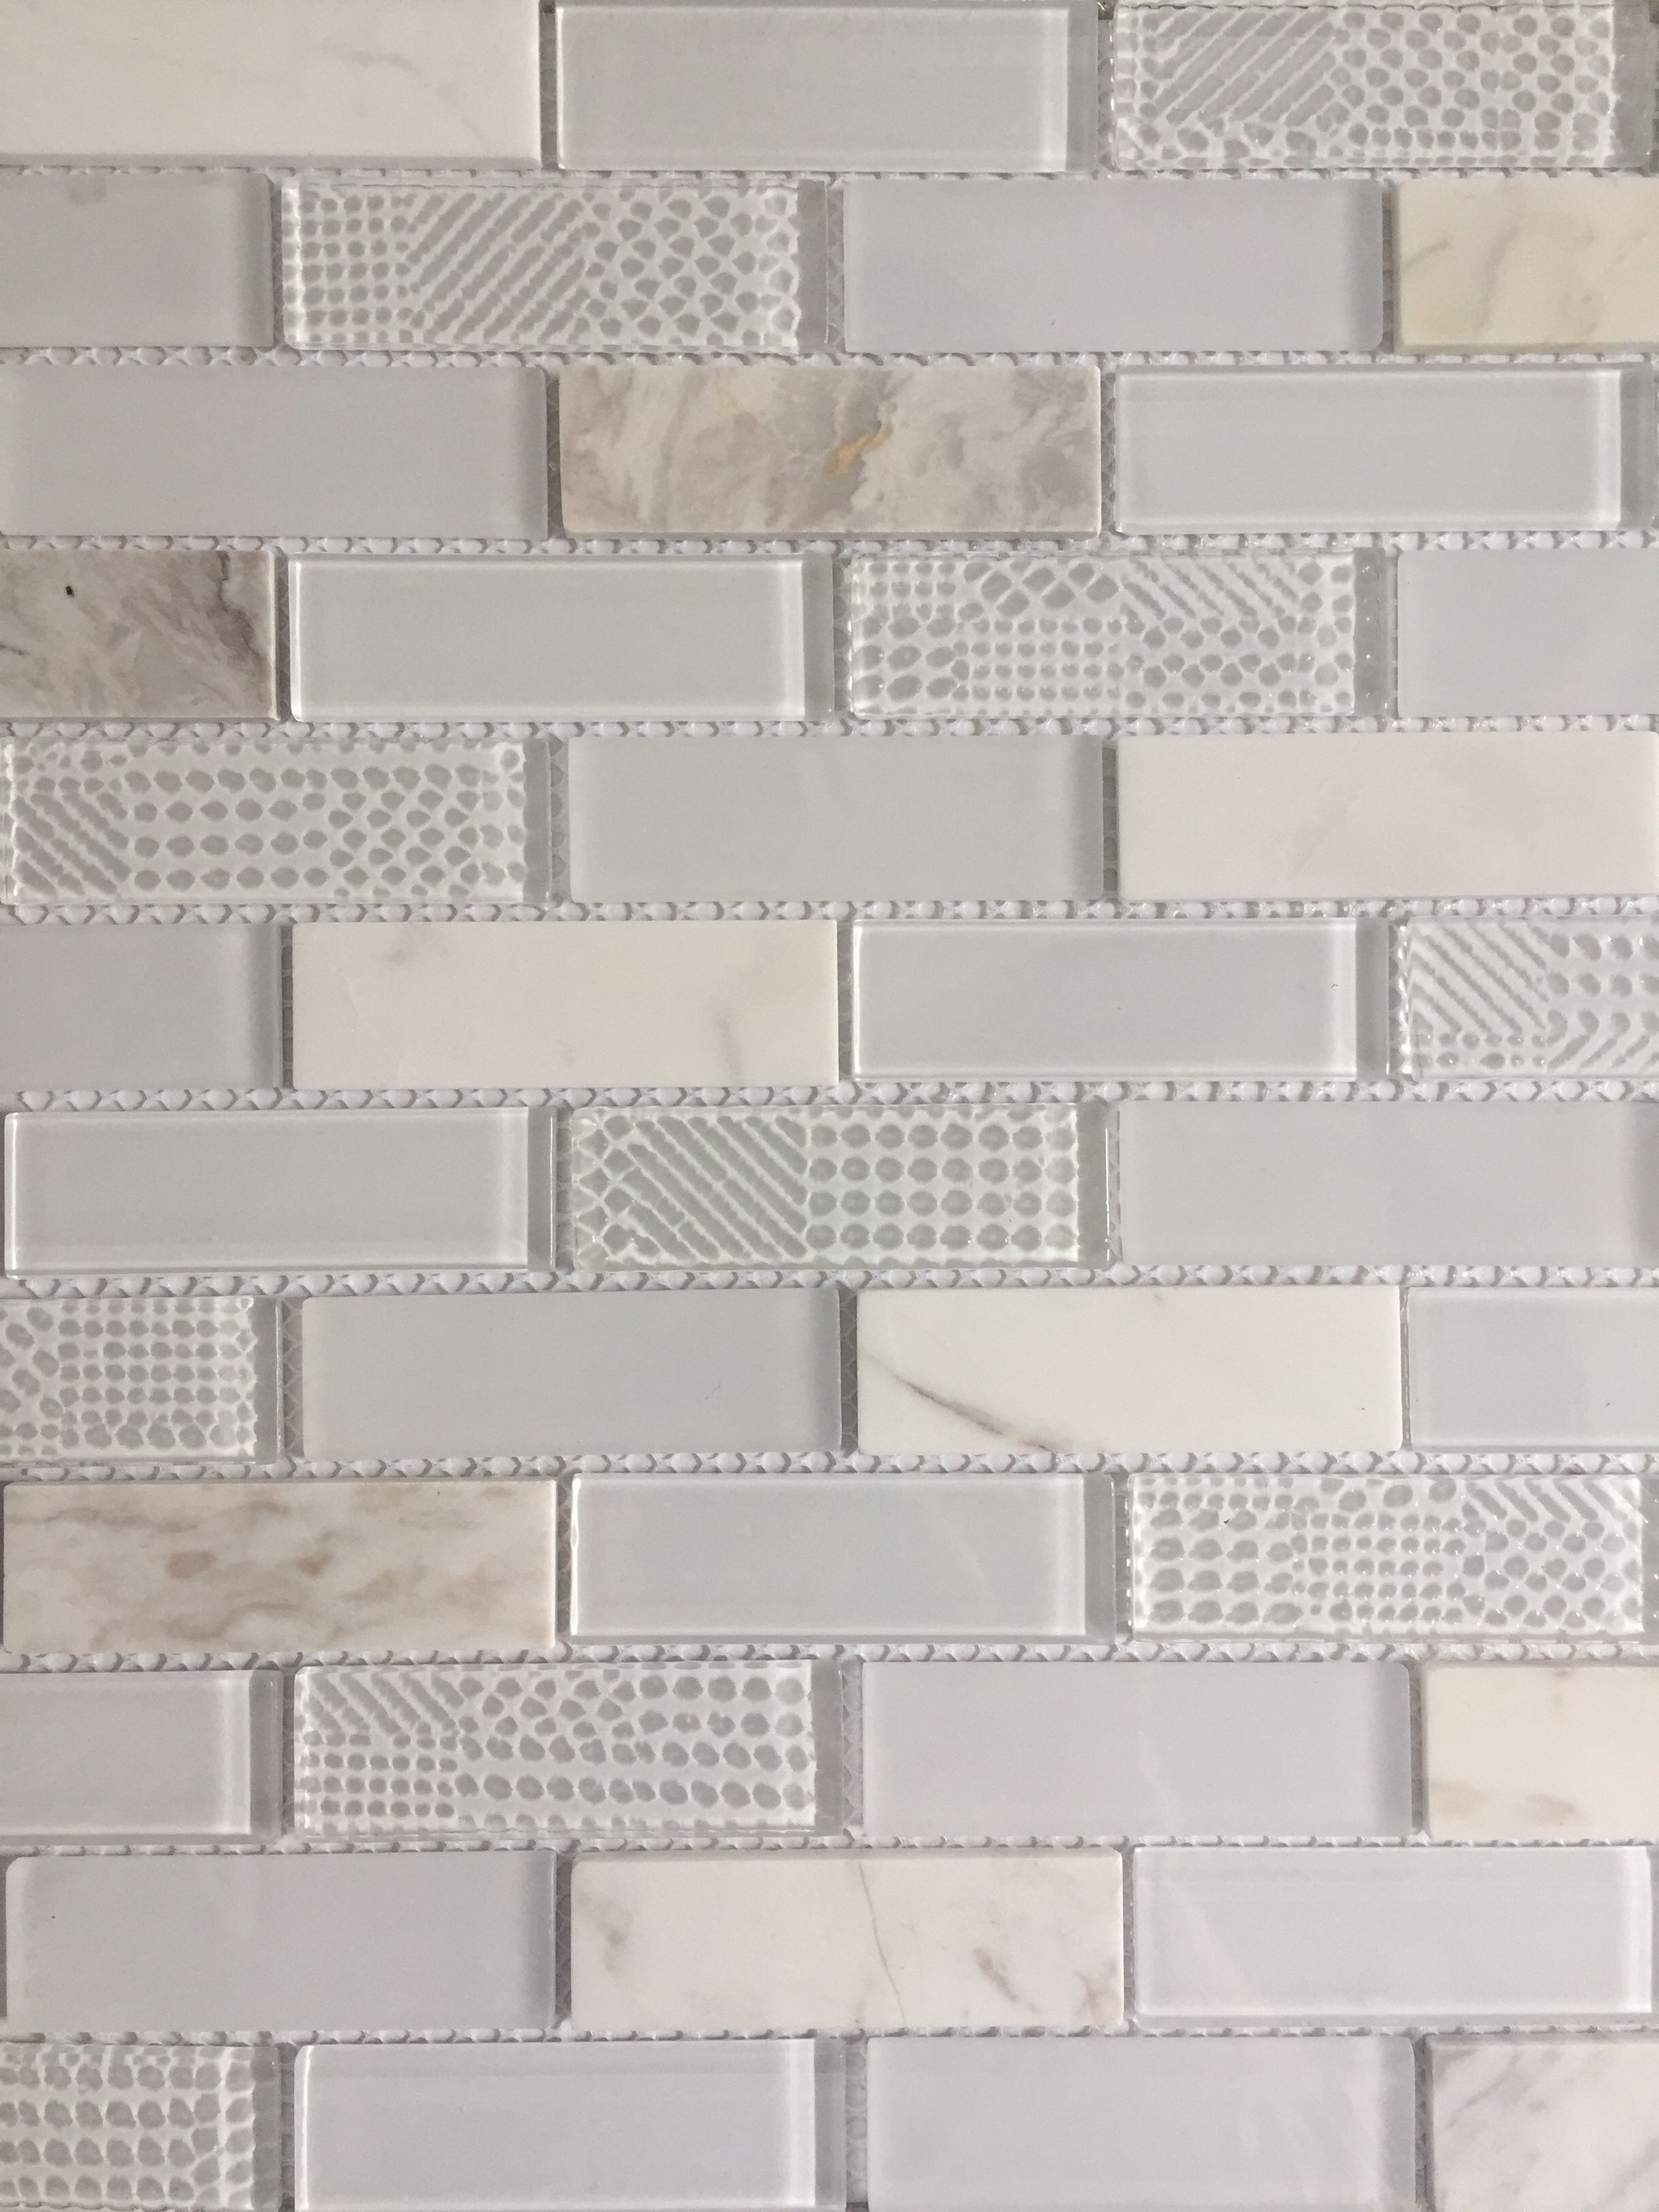 - Avenzo Glacier Ice Mosaic Tile From Lowes. Got For Downstairs Bath